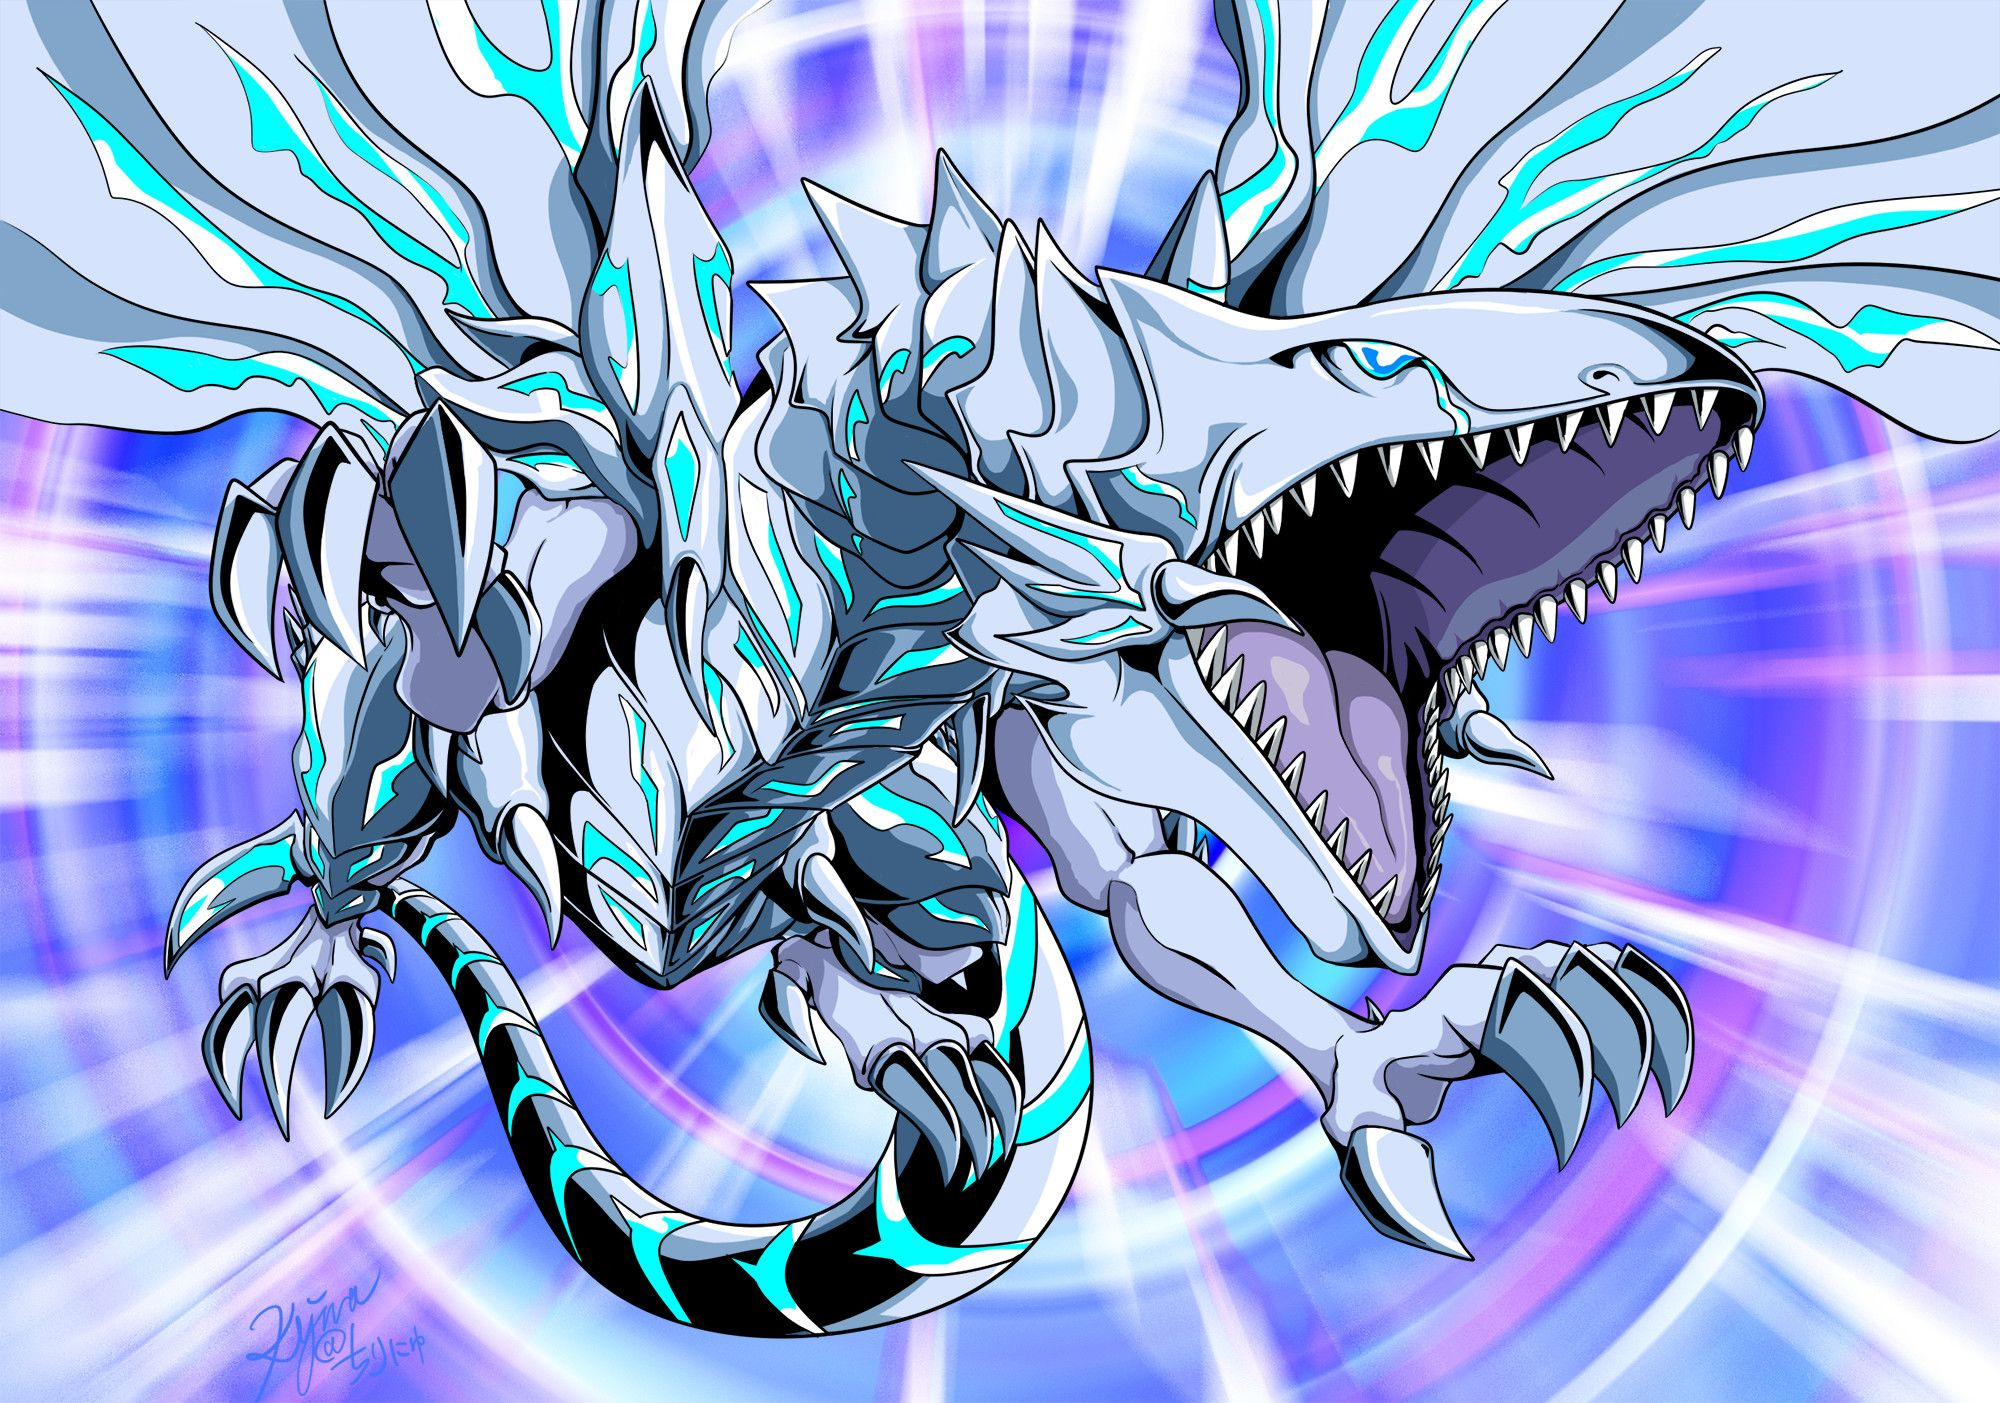 2000x1403 Blue Eyes Alternative White Dragon Download Blue Eyes Alternative White Dragon Image White Dragon Dragon Images Yugioh Monsters